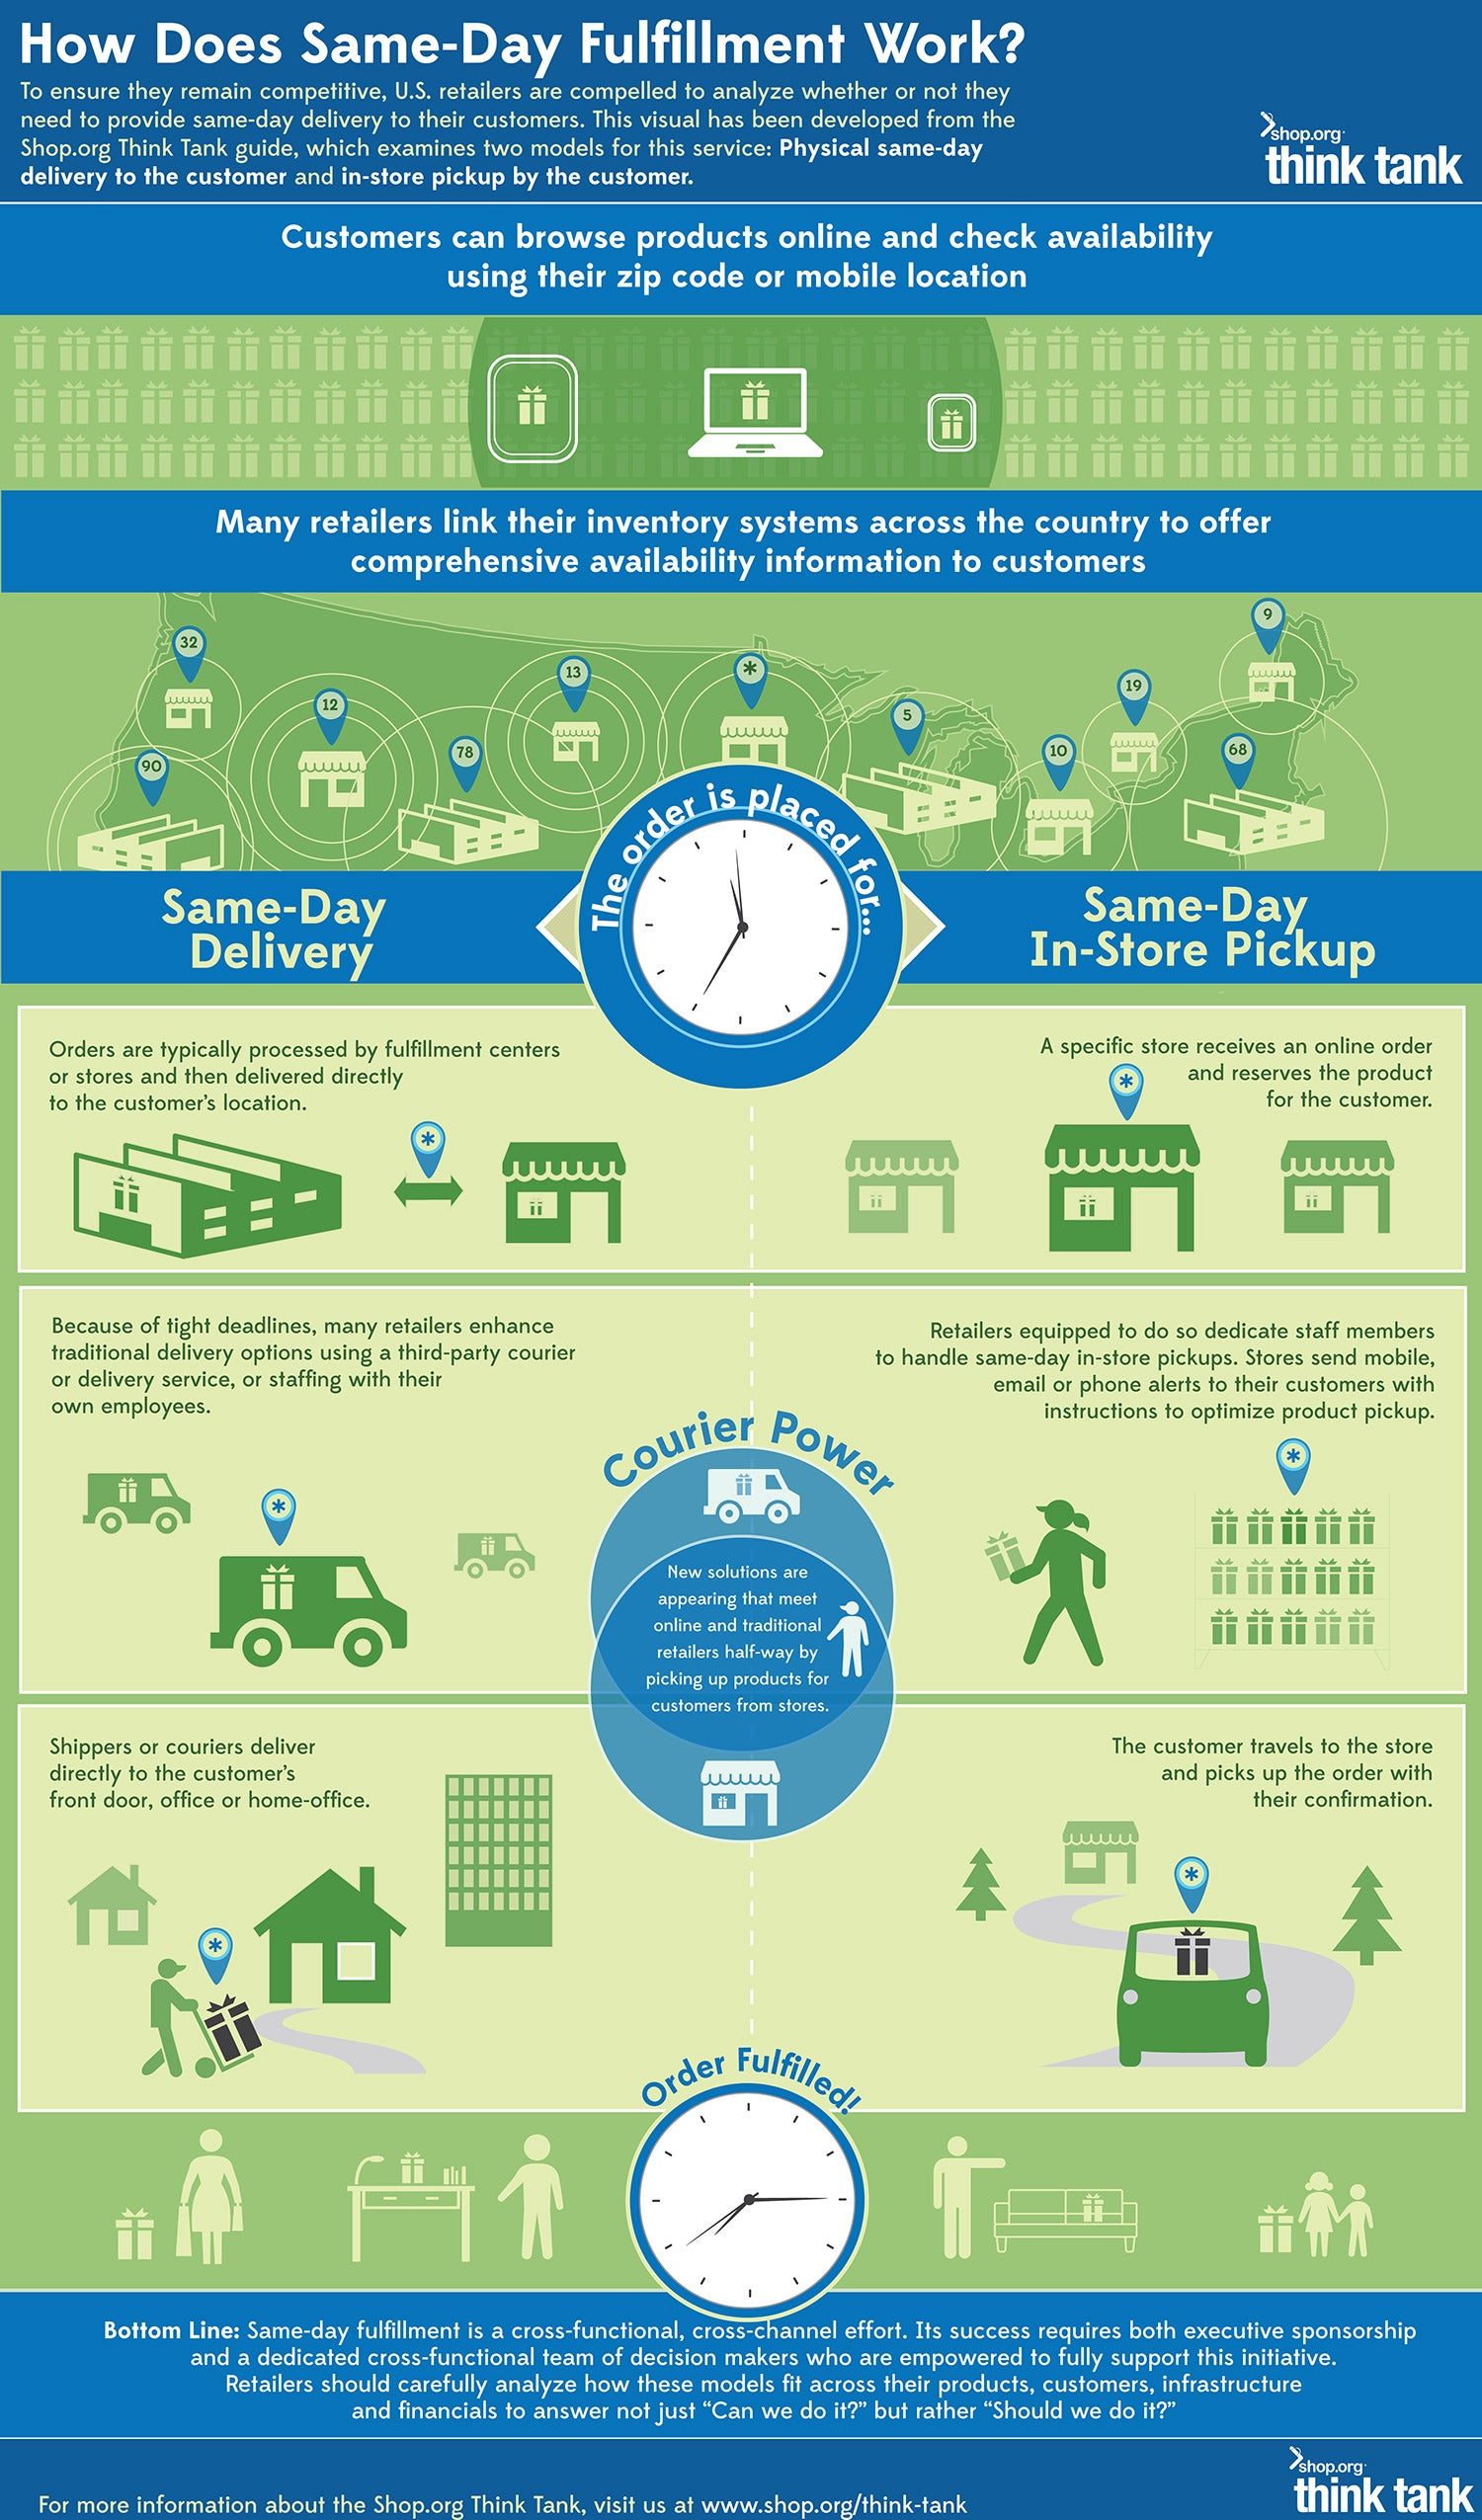 Learn How Same-Day Fulfillment Works (Infographic)